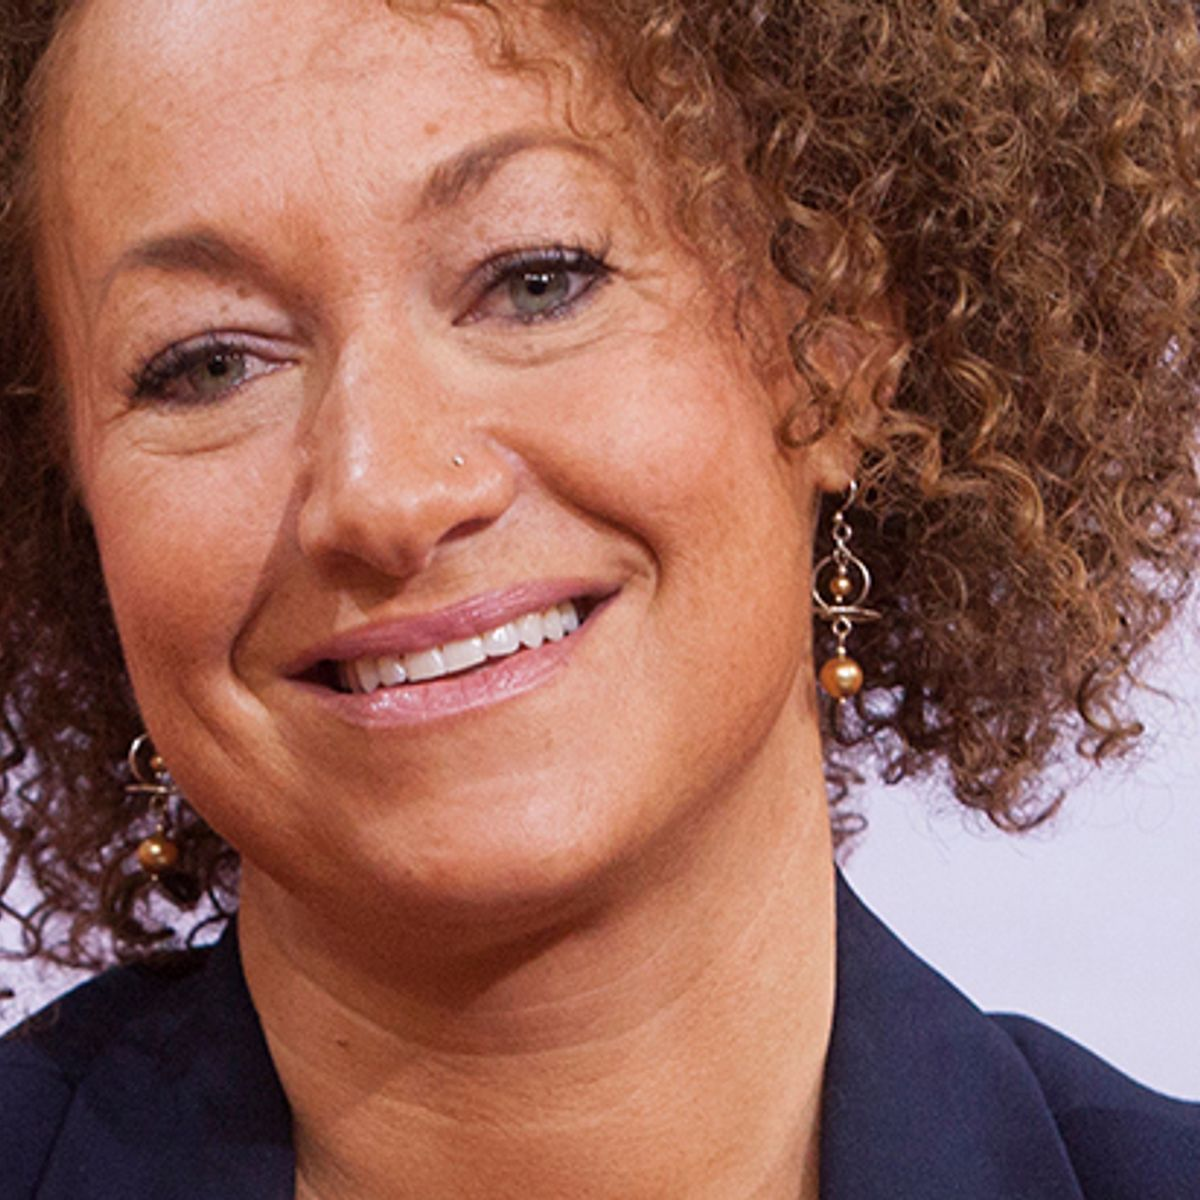 Rachel Dolezal isn't the story: 4 other outrages that we need to stop ignoring